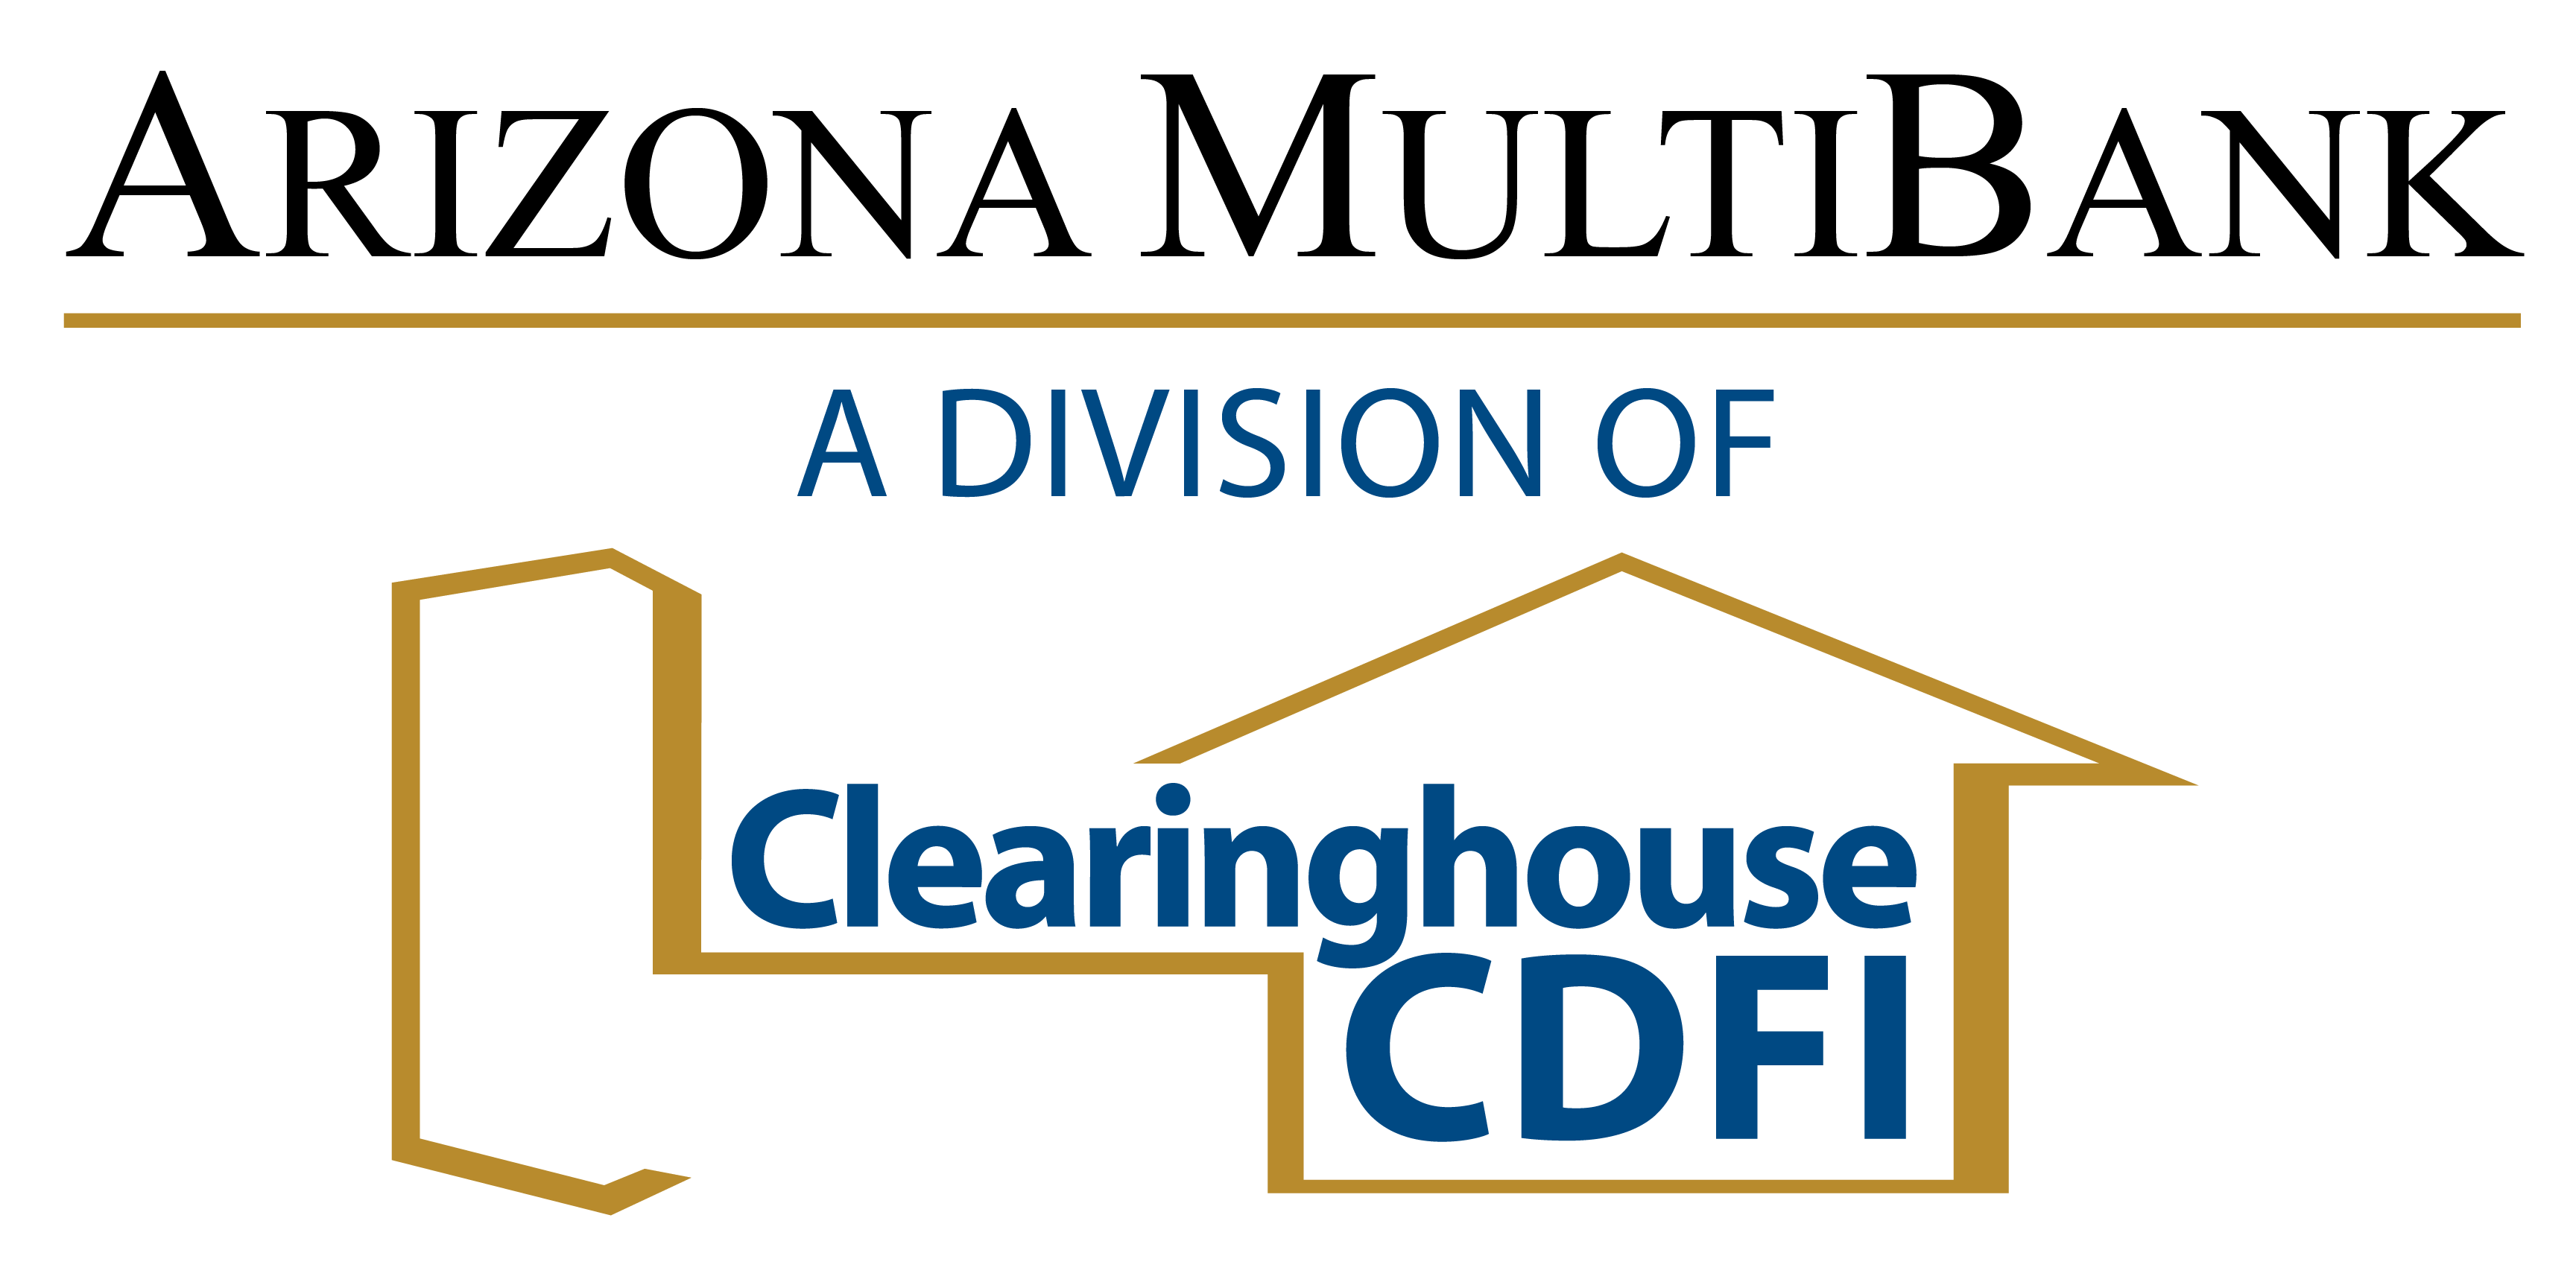 Clearinghouse Cdfi Expands Into Arizona Through Merger With Arizona